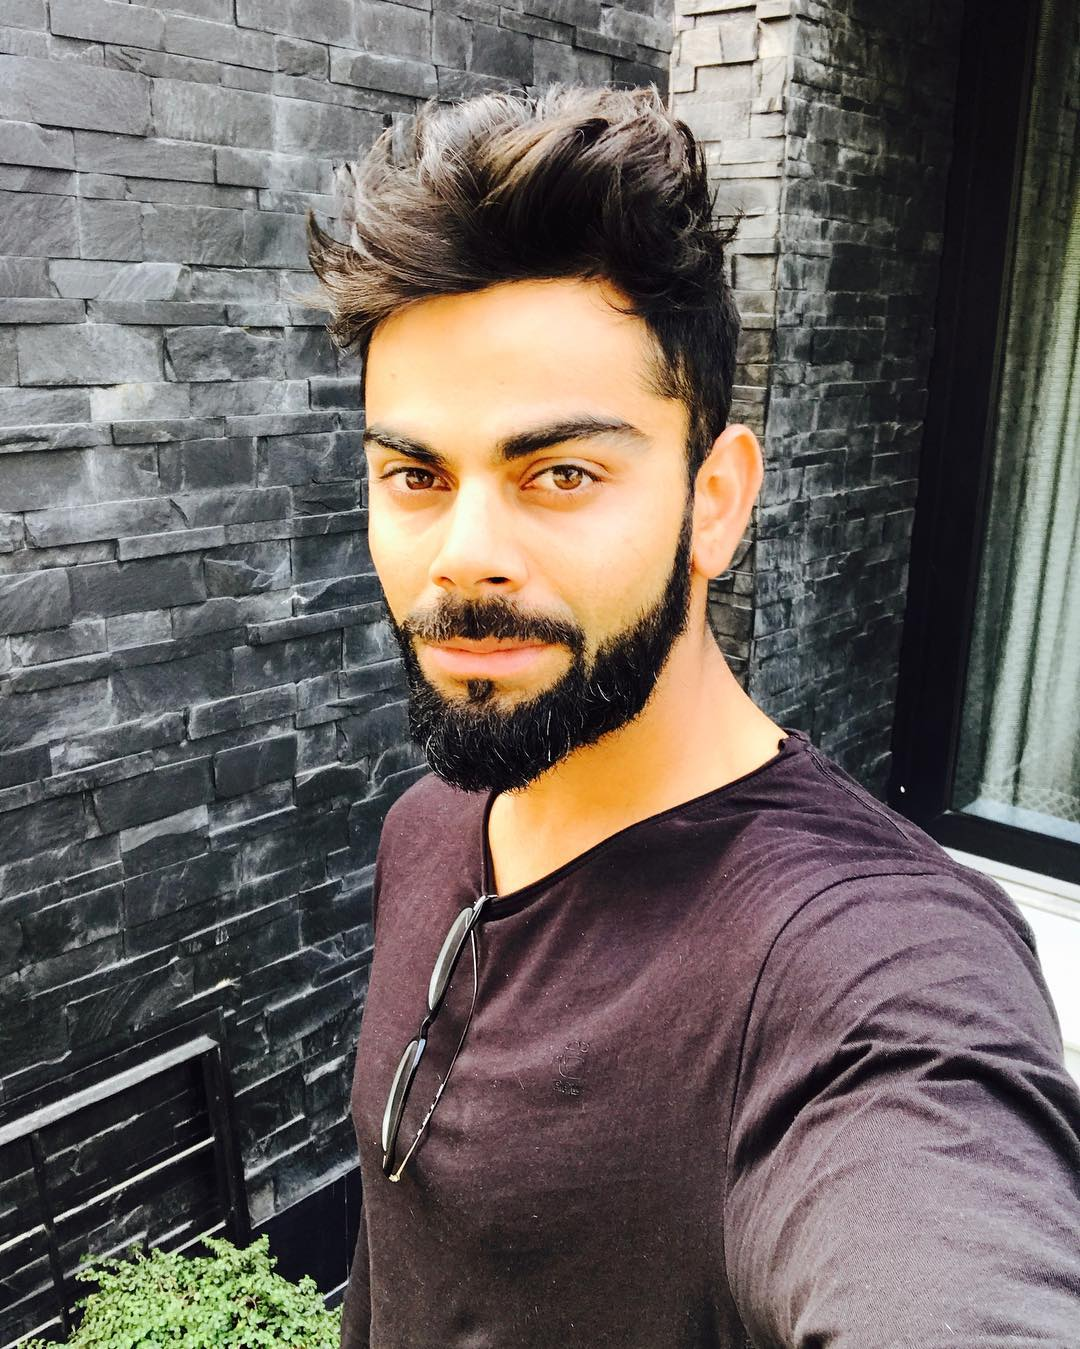 Virat Kohli On Twitter A Lazy Day At Home Is All You